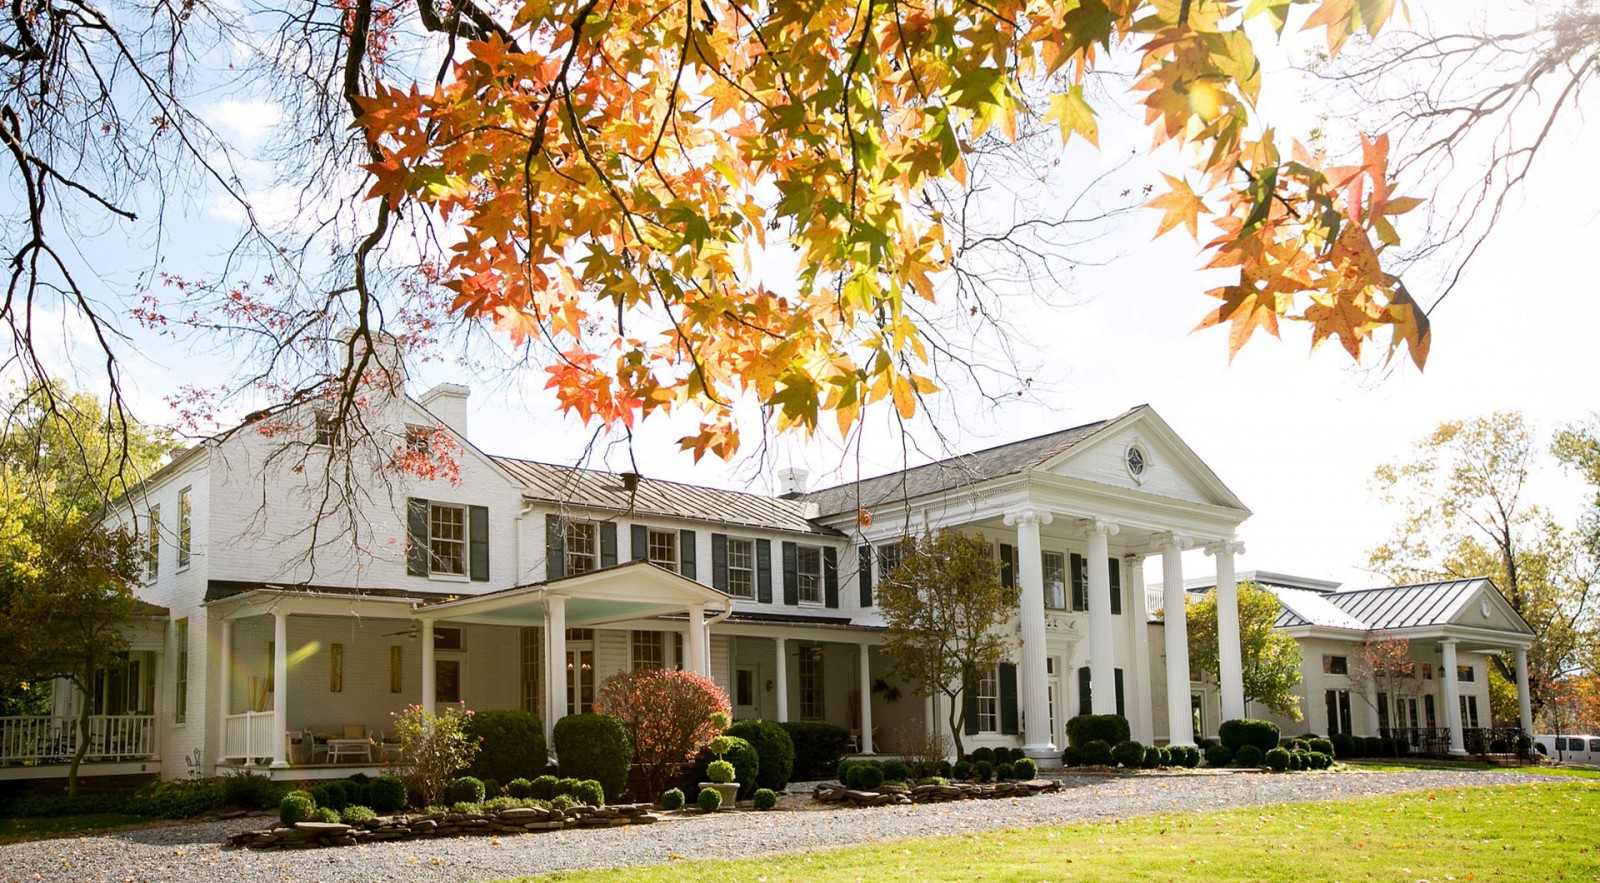 Smart tips to get your home ready for fall